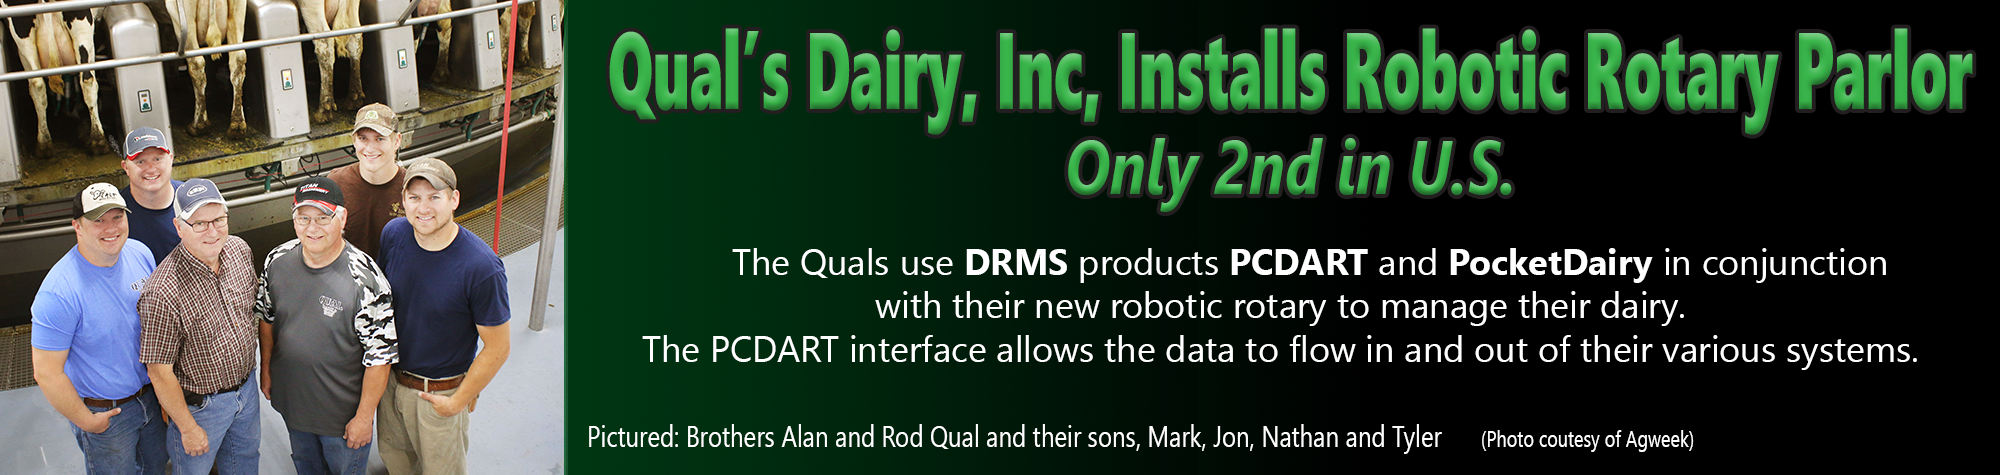 Qual's Dairy